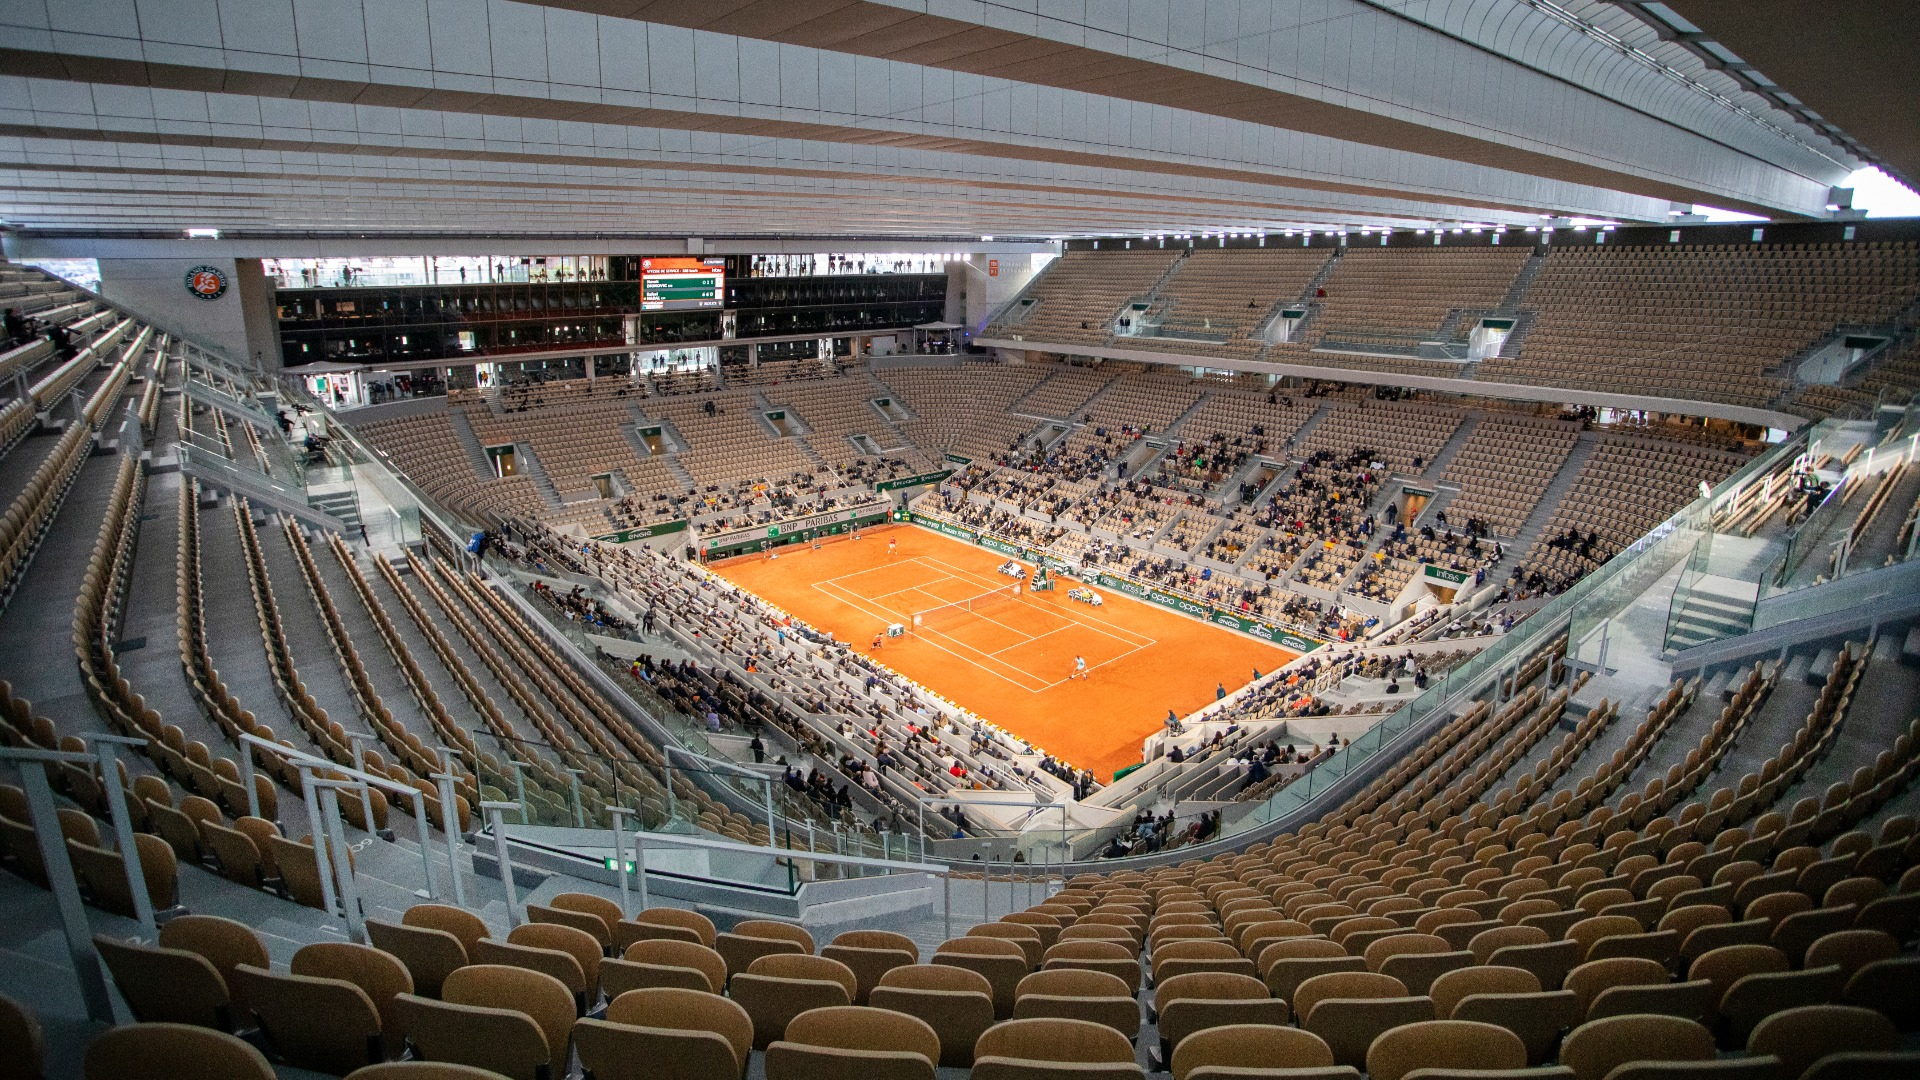 ICSS encouraged by response to match-fixing fears at Roland Garros